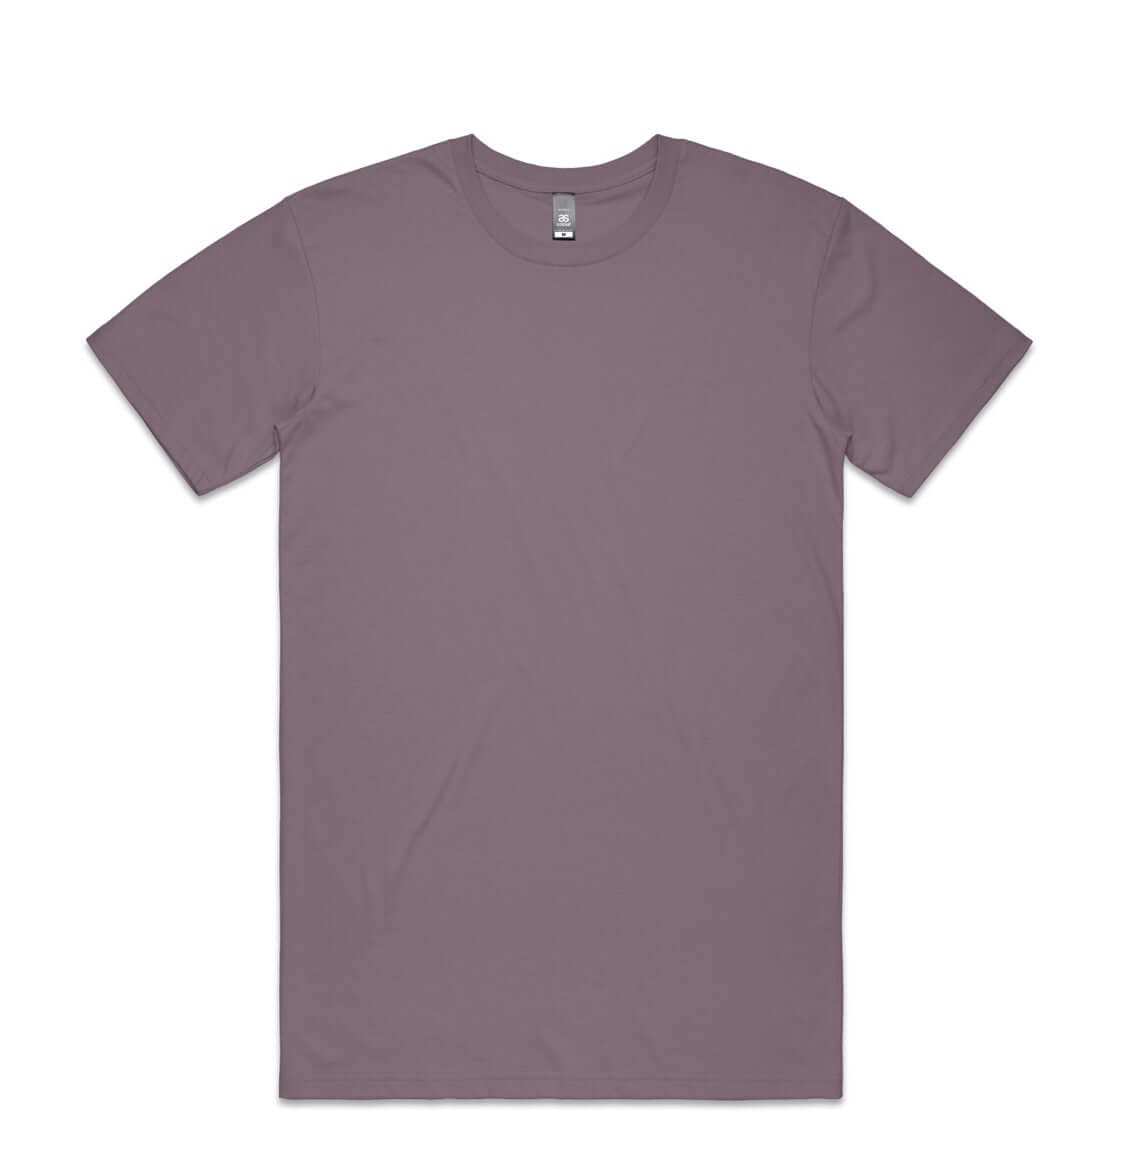 AS Colour STAPLE TEE - Mauve